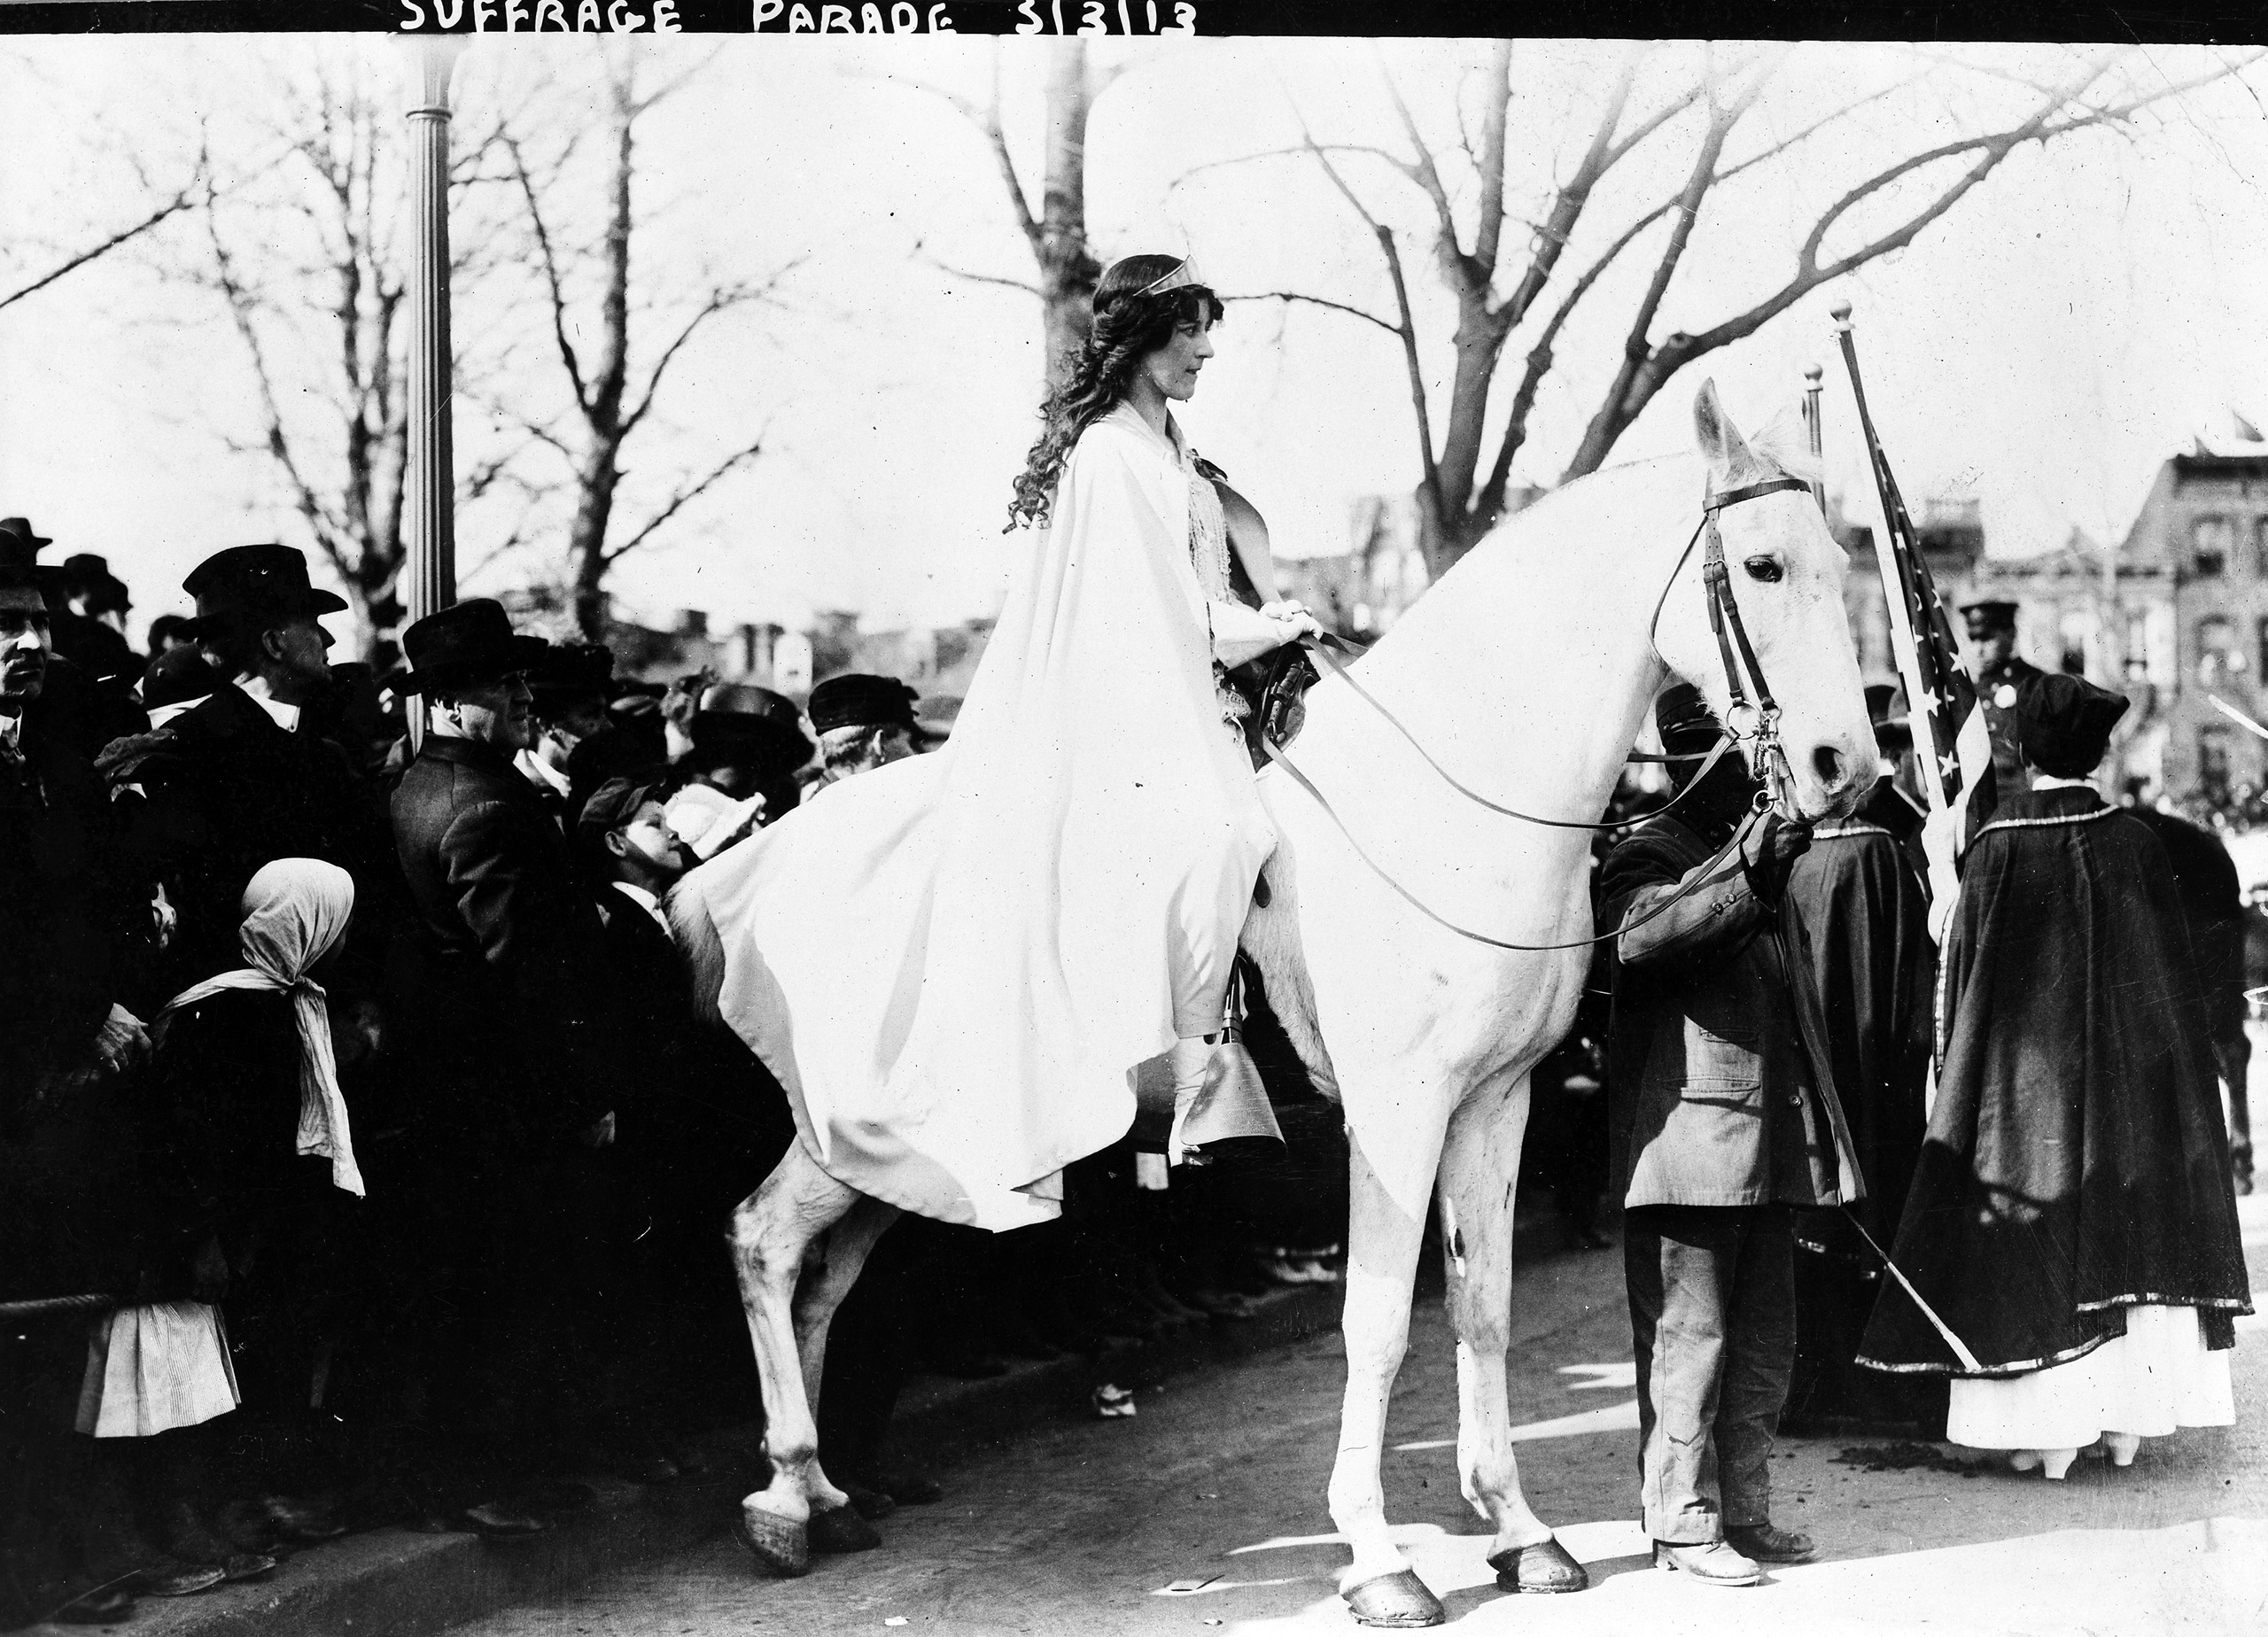 Inez Milholland Boissevain, wearing white cape, seated on white horse at the National American Woman Suffrage Association parade, March 3, 1913, Washington, D.C.